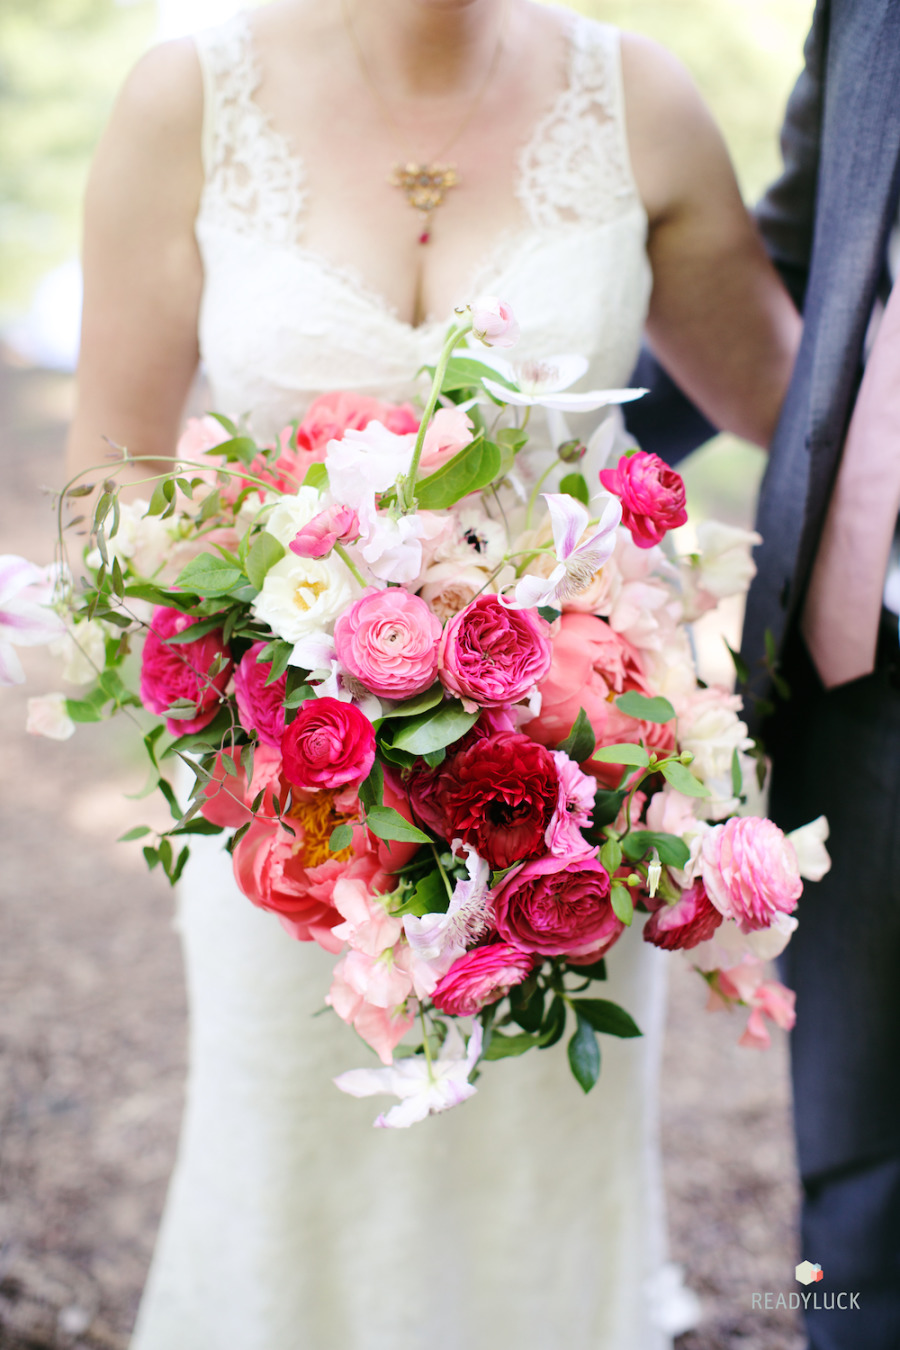 Vibrant bridal bouquet by Poppies and Posies. Photo by Readyluck.